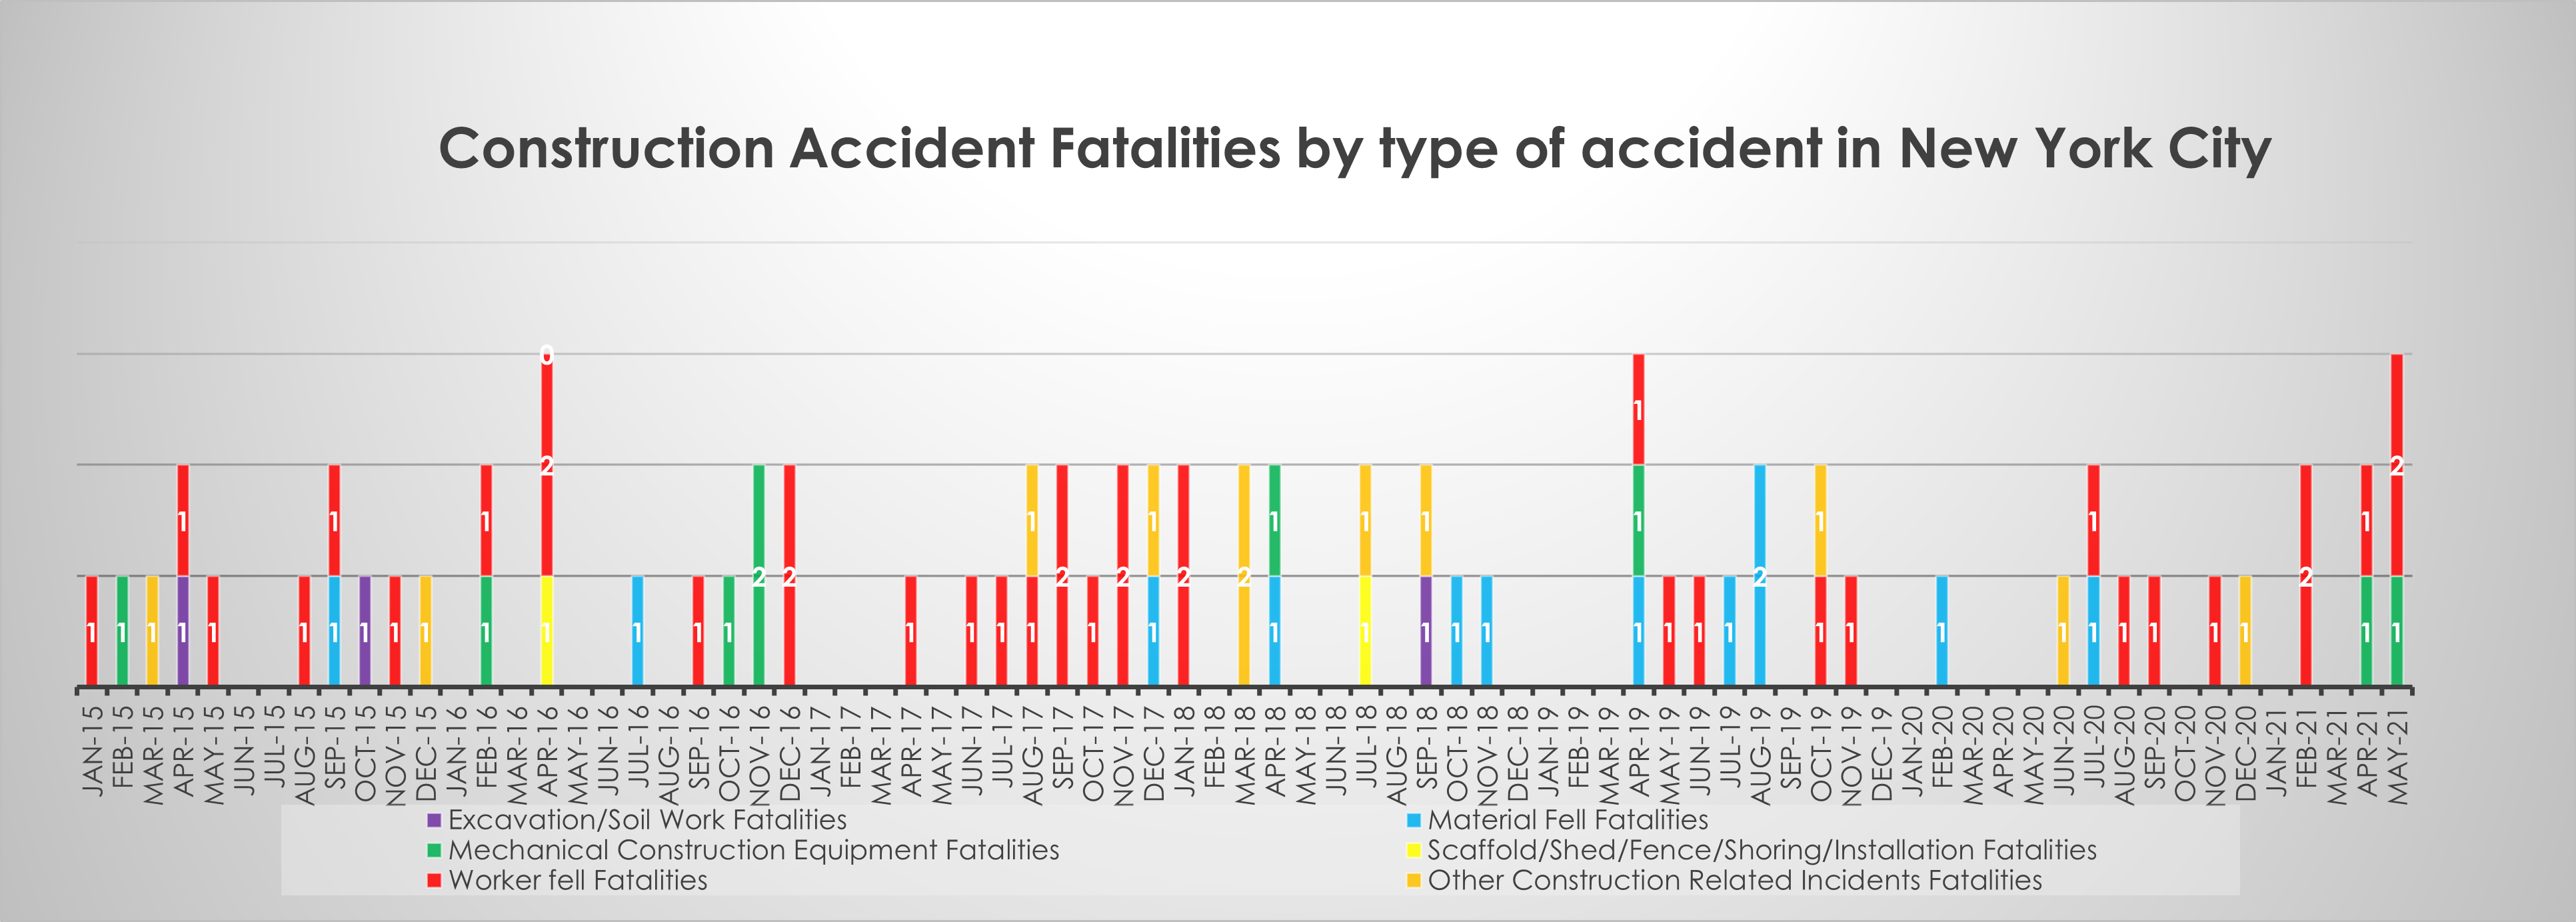 Construction accident fatalities in New York in May 21 by type